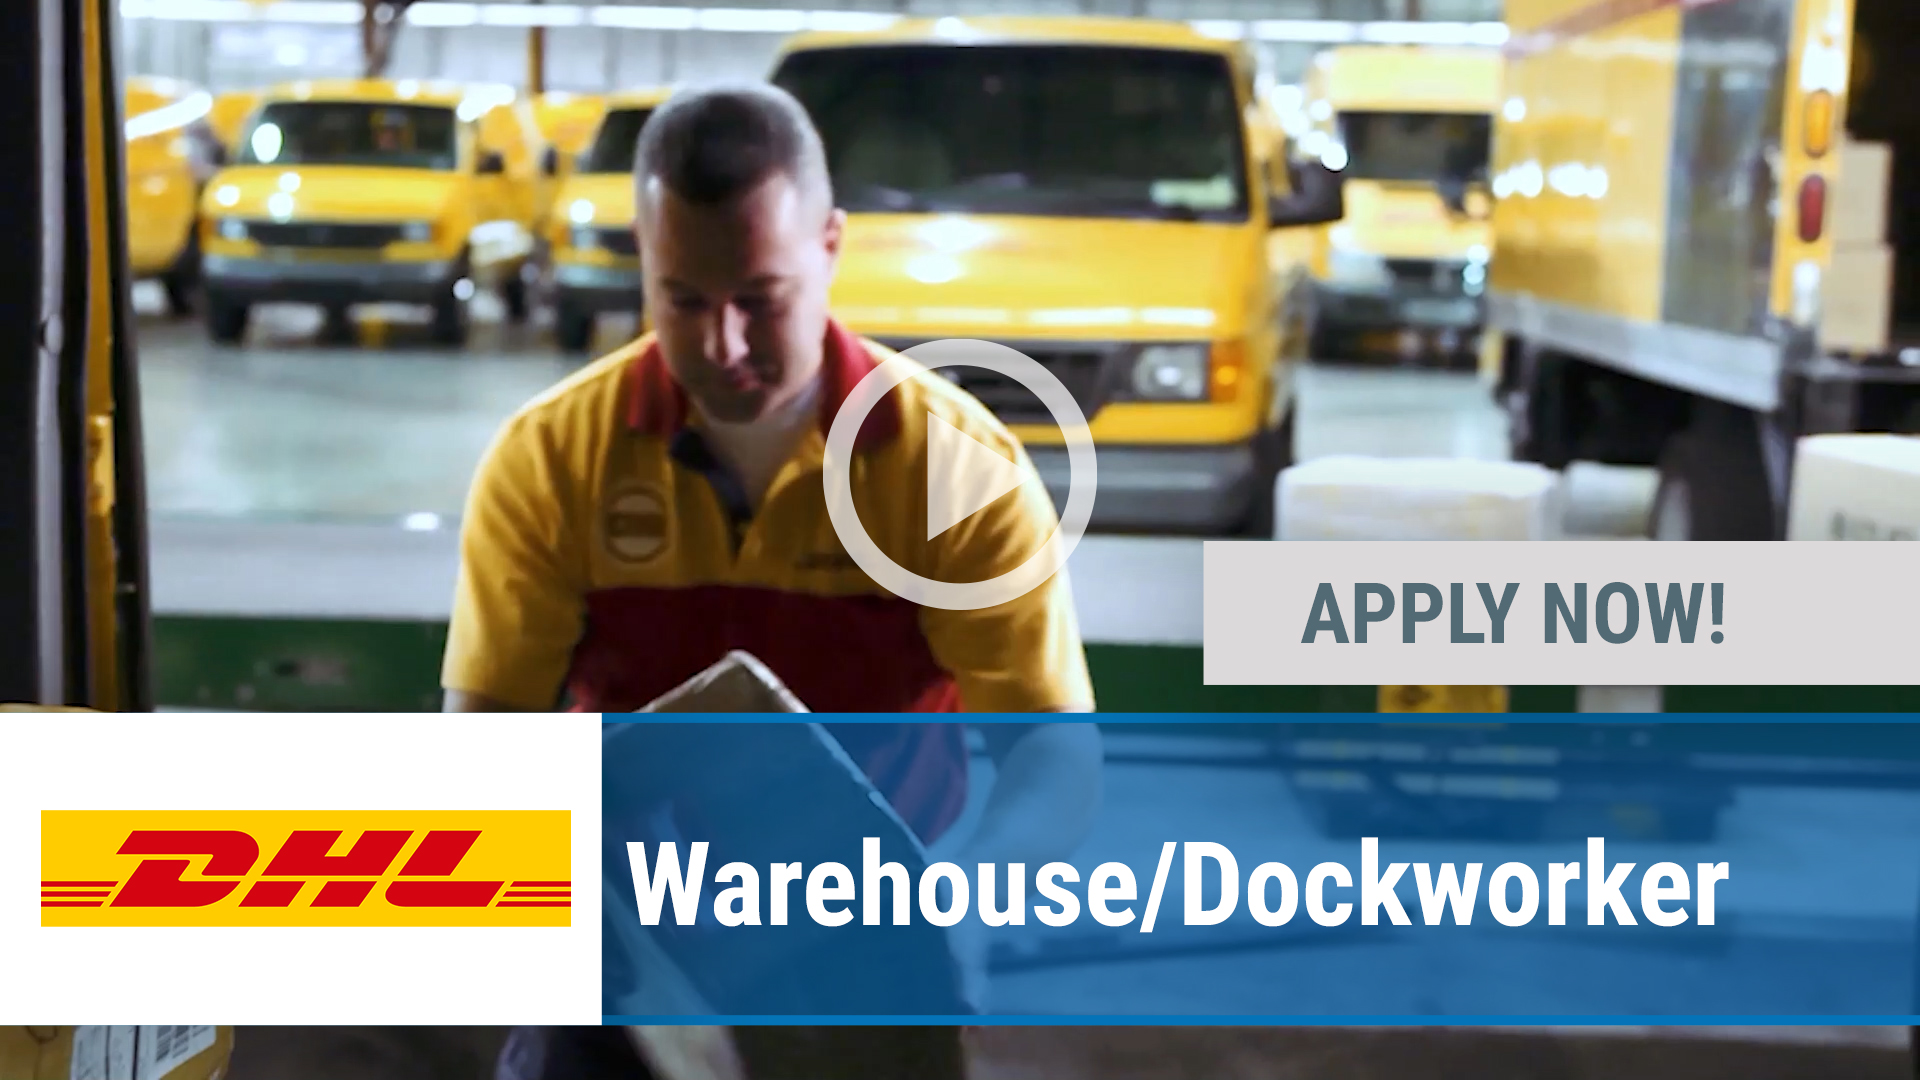 Watch our careers video for available job opening Warehouse_Dockworker in Multiple